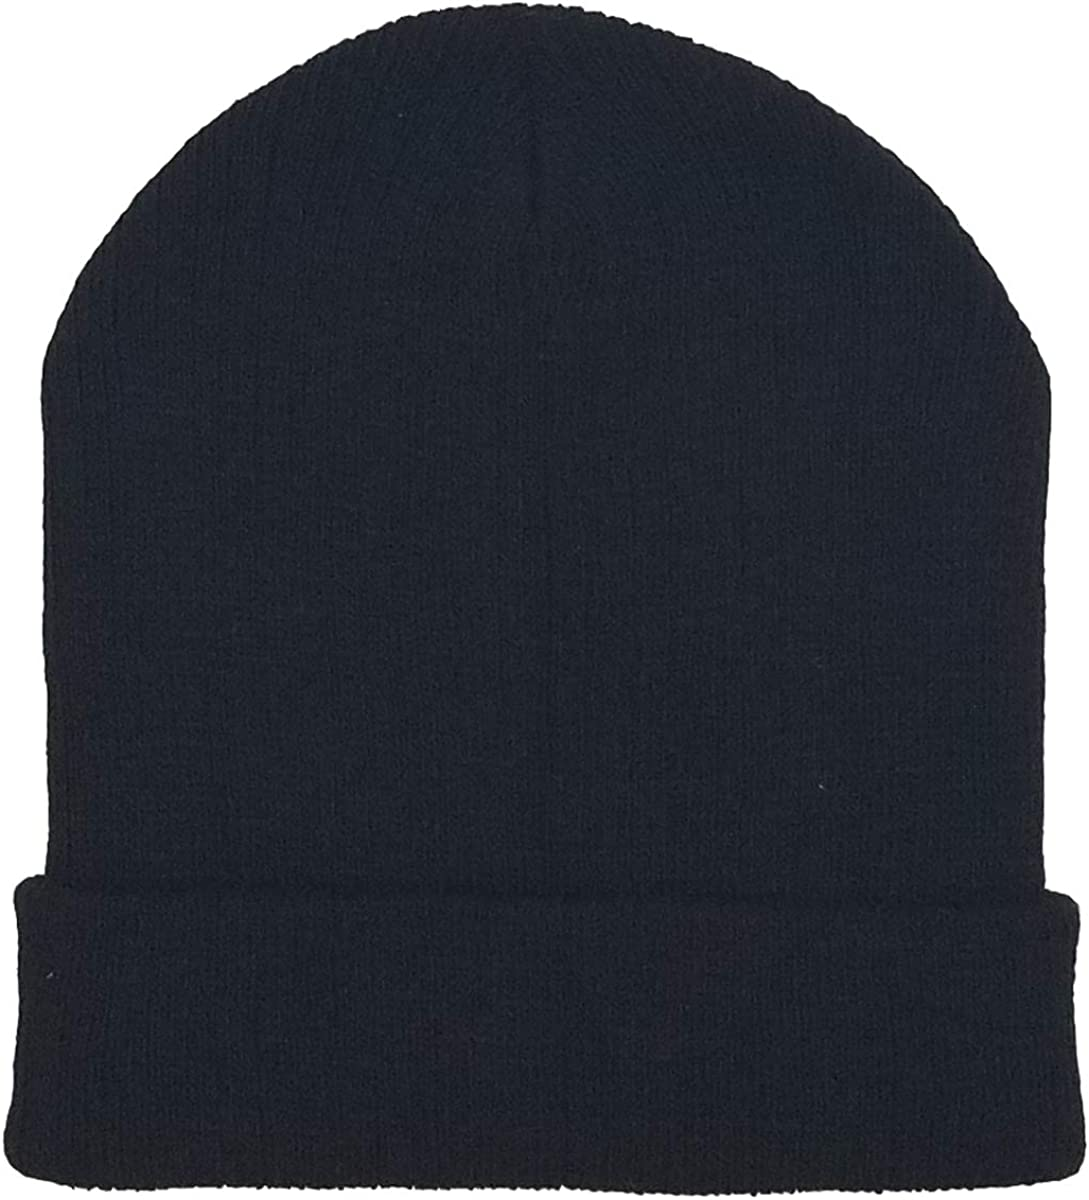 12 Pack Winter Beanie Hats for Men Women, Warm Cozy Knitted Cuffed Skull Cap, Wholesale at  Men's Clothing store